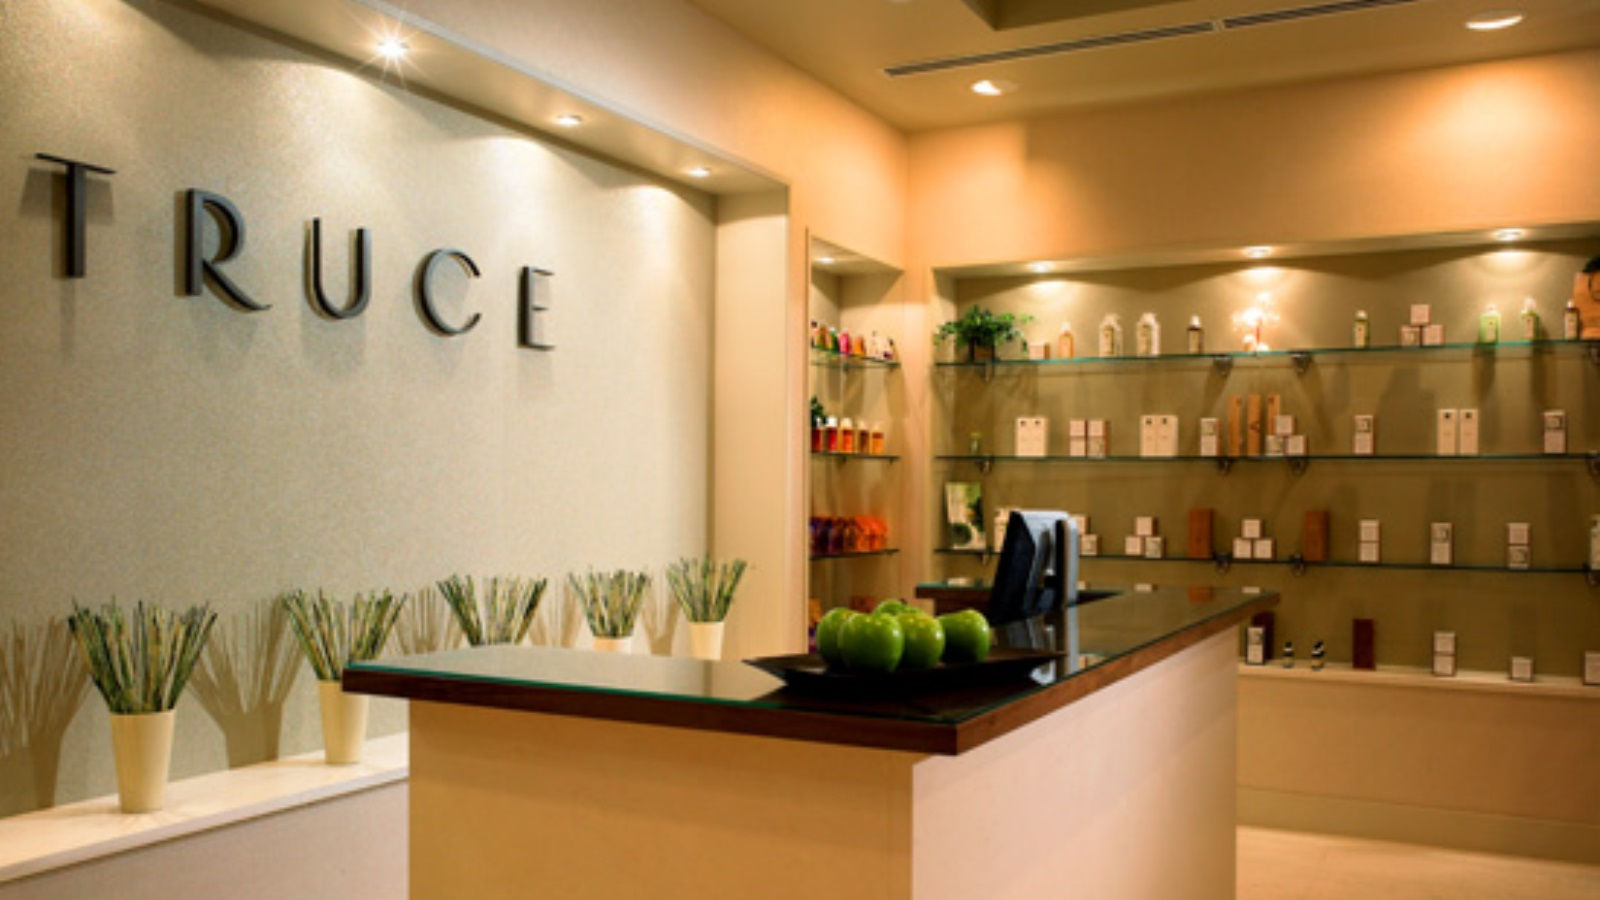 Bellevue Hotel Features - Truce Spa